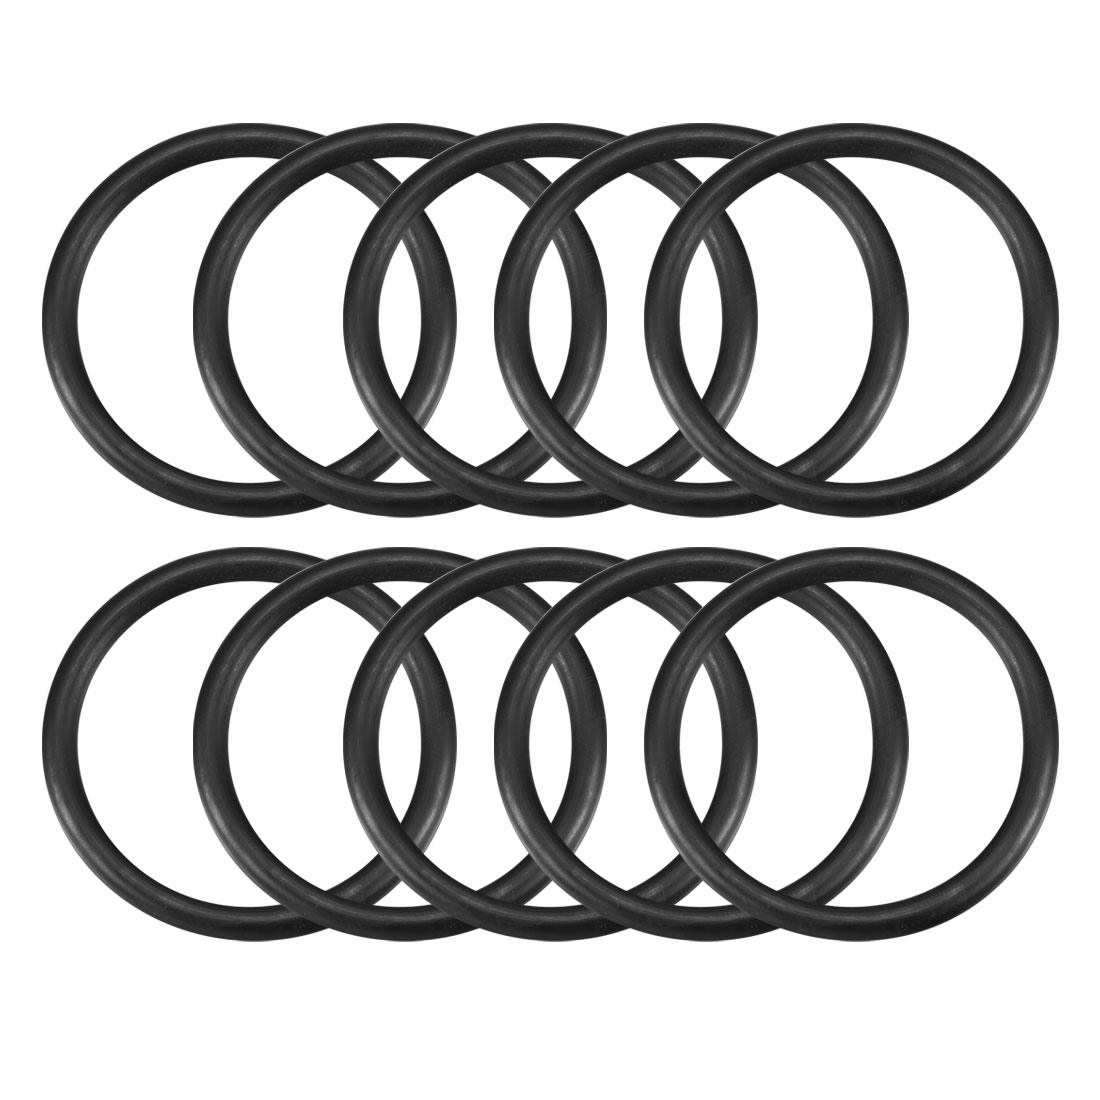 5mm x 55mm Black Nitrile Rubber Shielding O Ring Seal Washer Grommets 10 Pcs